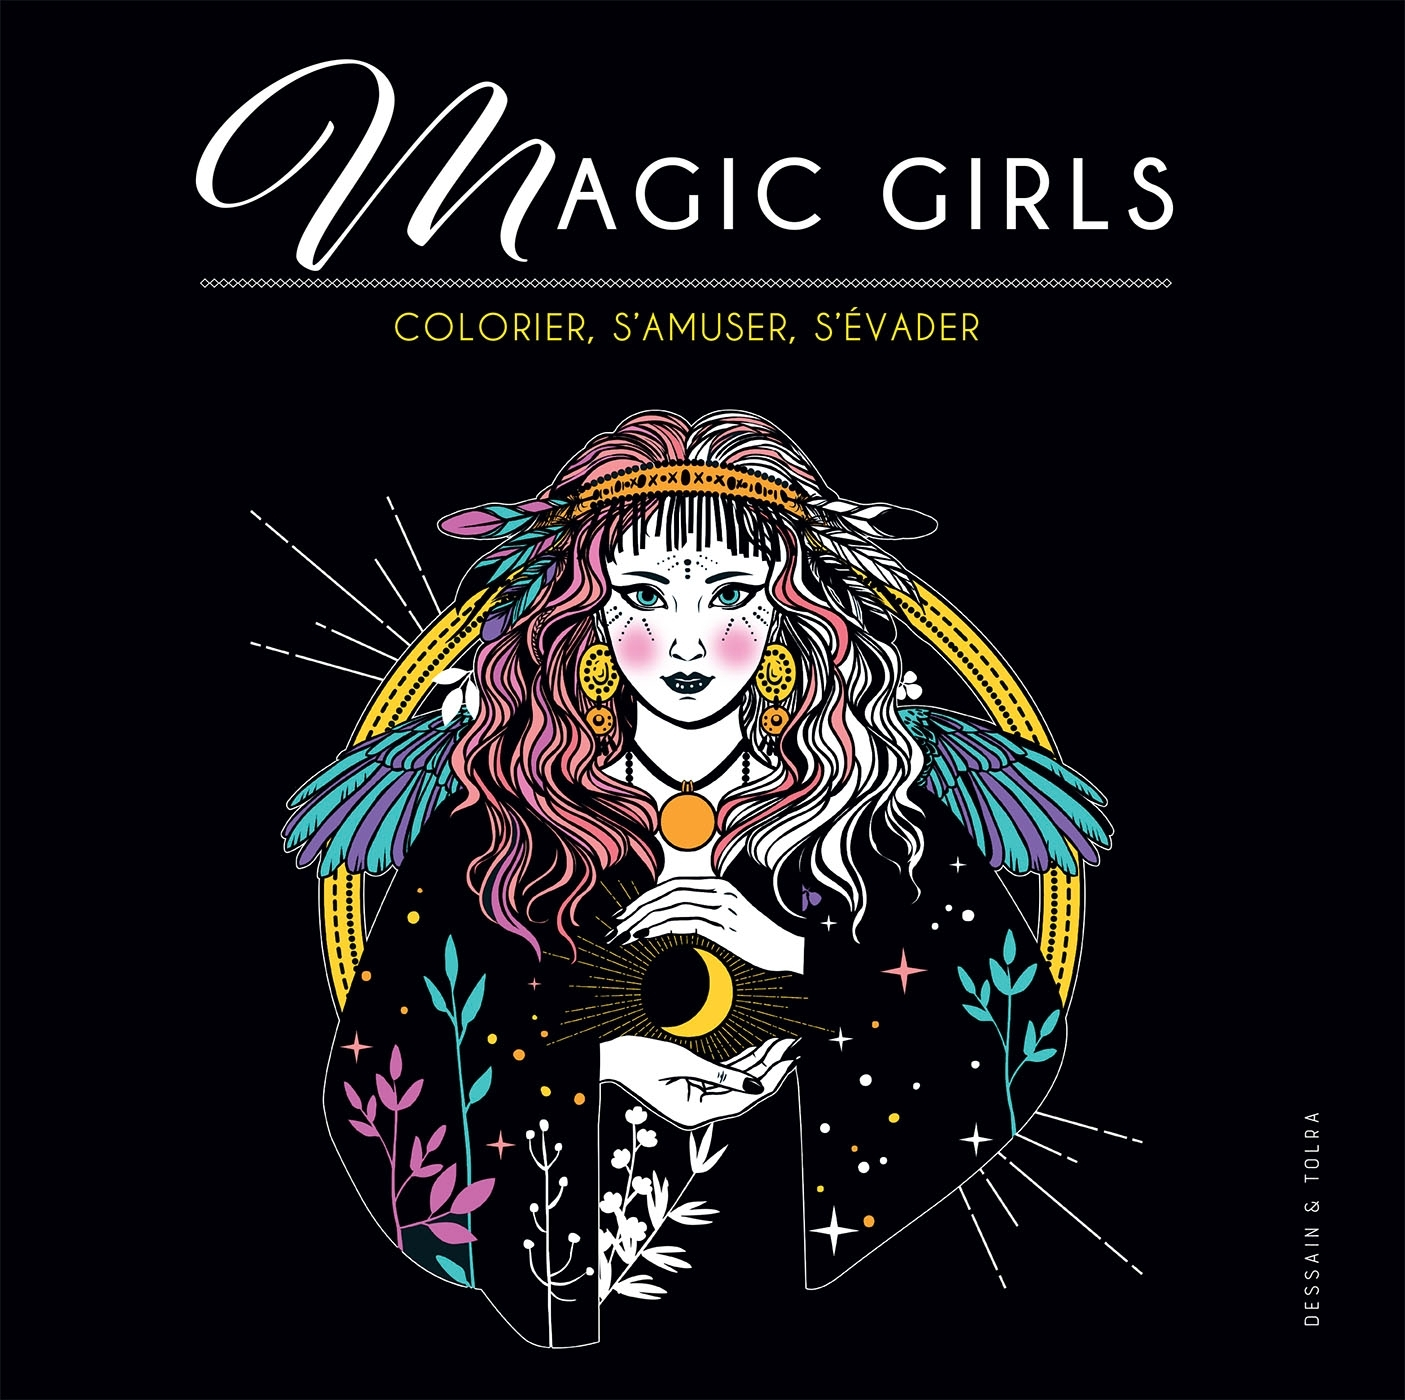 MAGIC GIRLS - COLORIER, S'AMUSER, S'EVADER